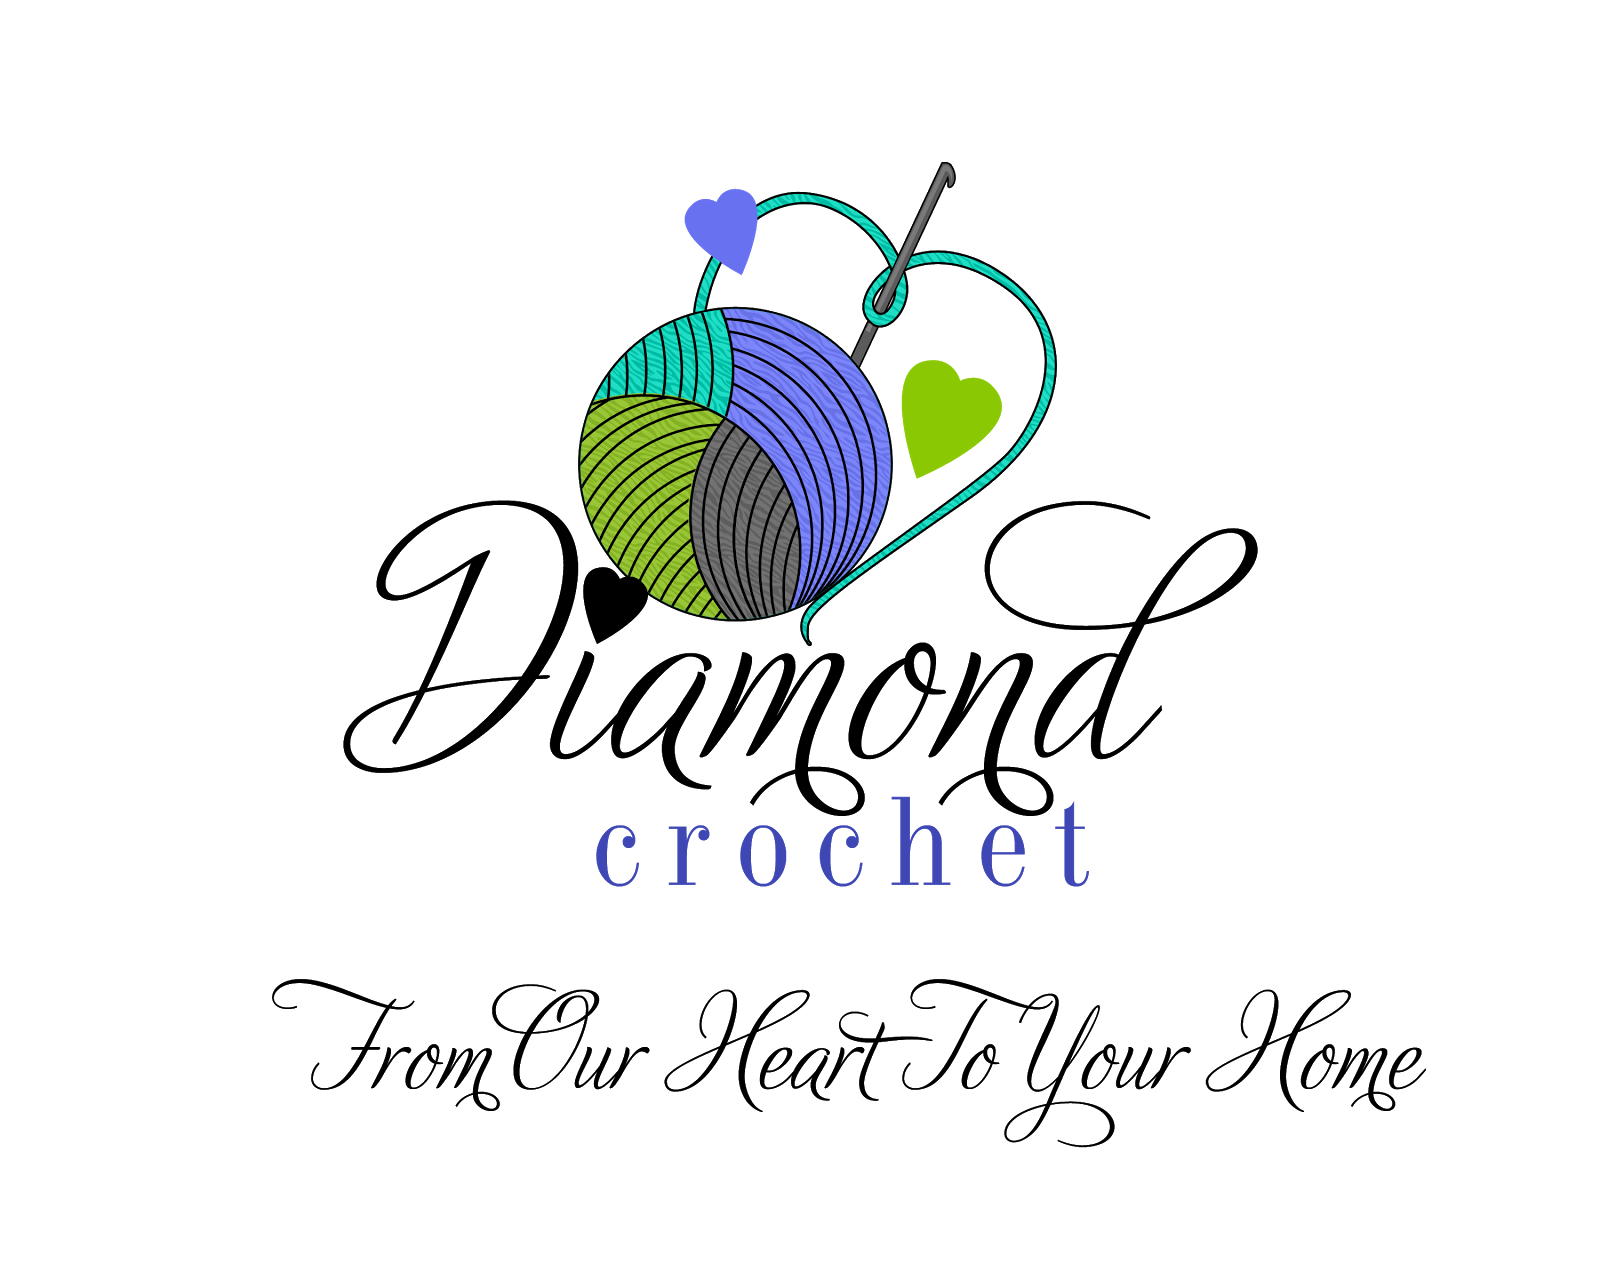 Crochet Logo : Crochet Logo Related Keywords & Suggestions - Crochet Logo Long Tail ...